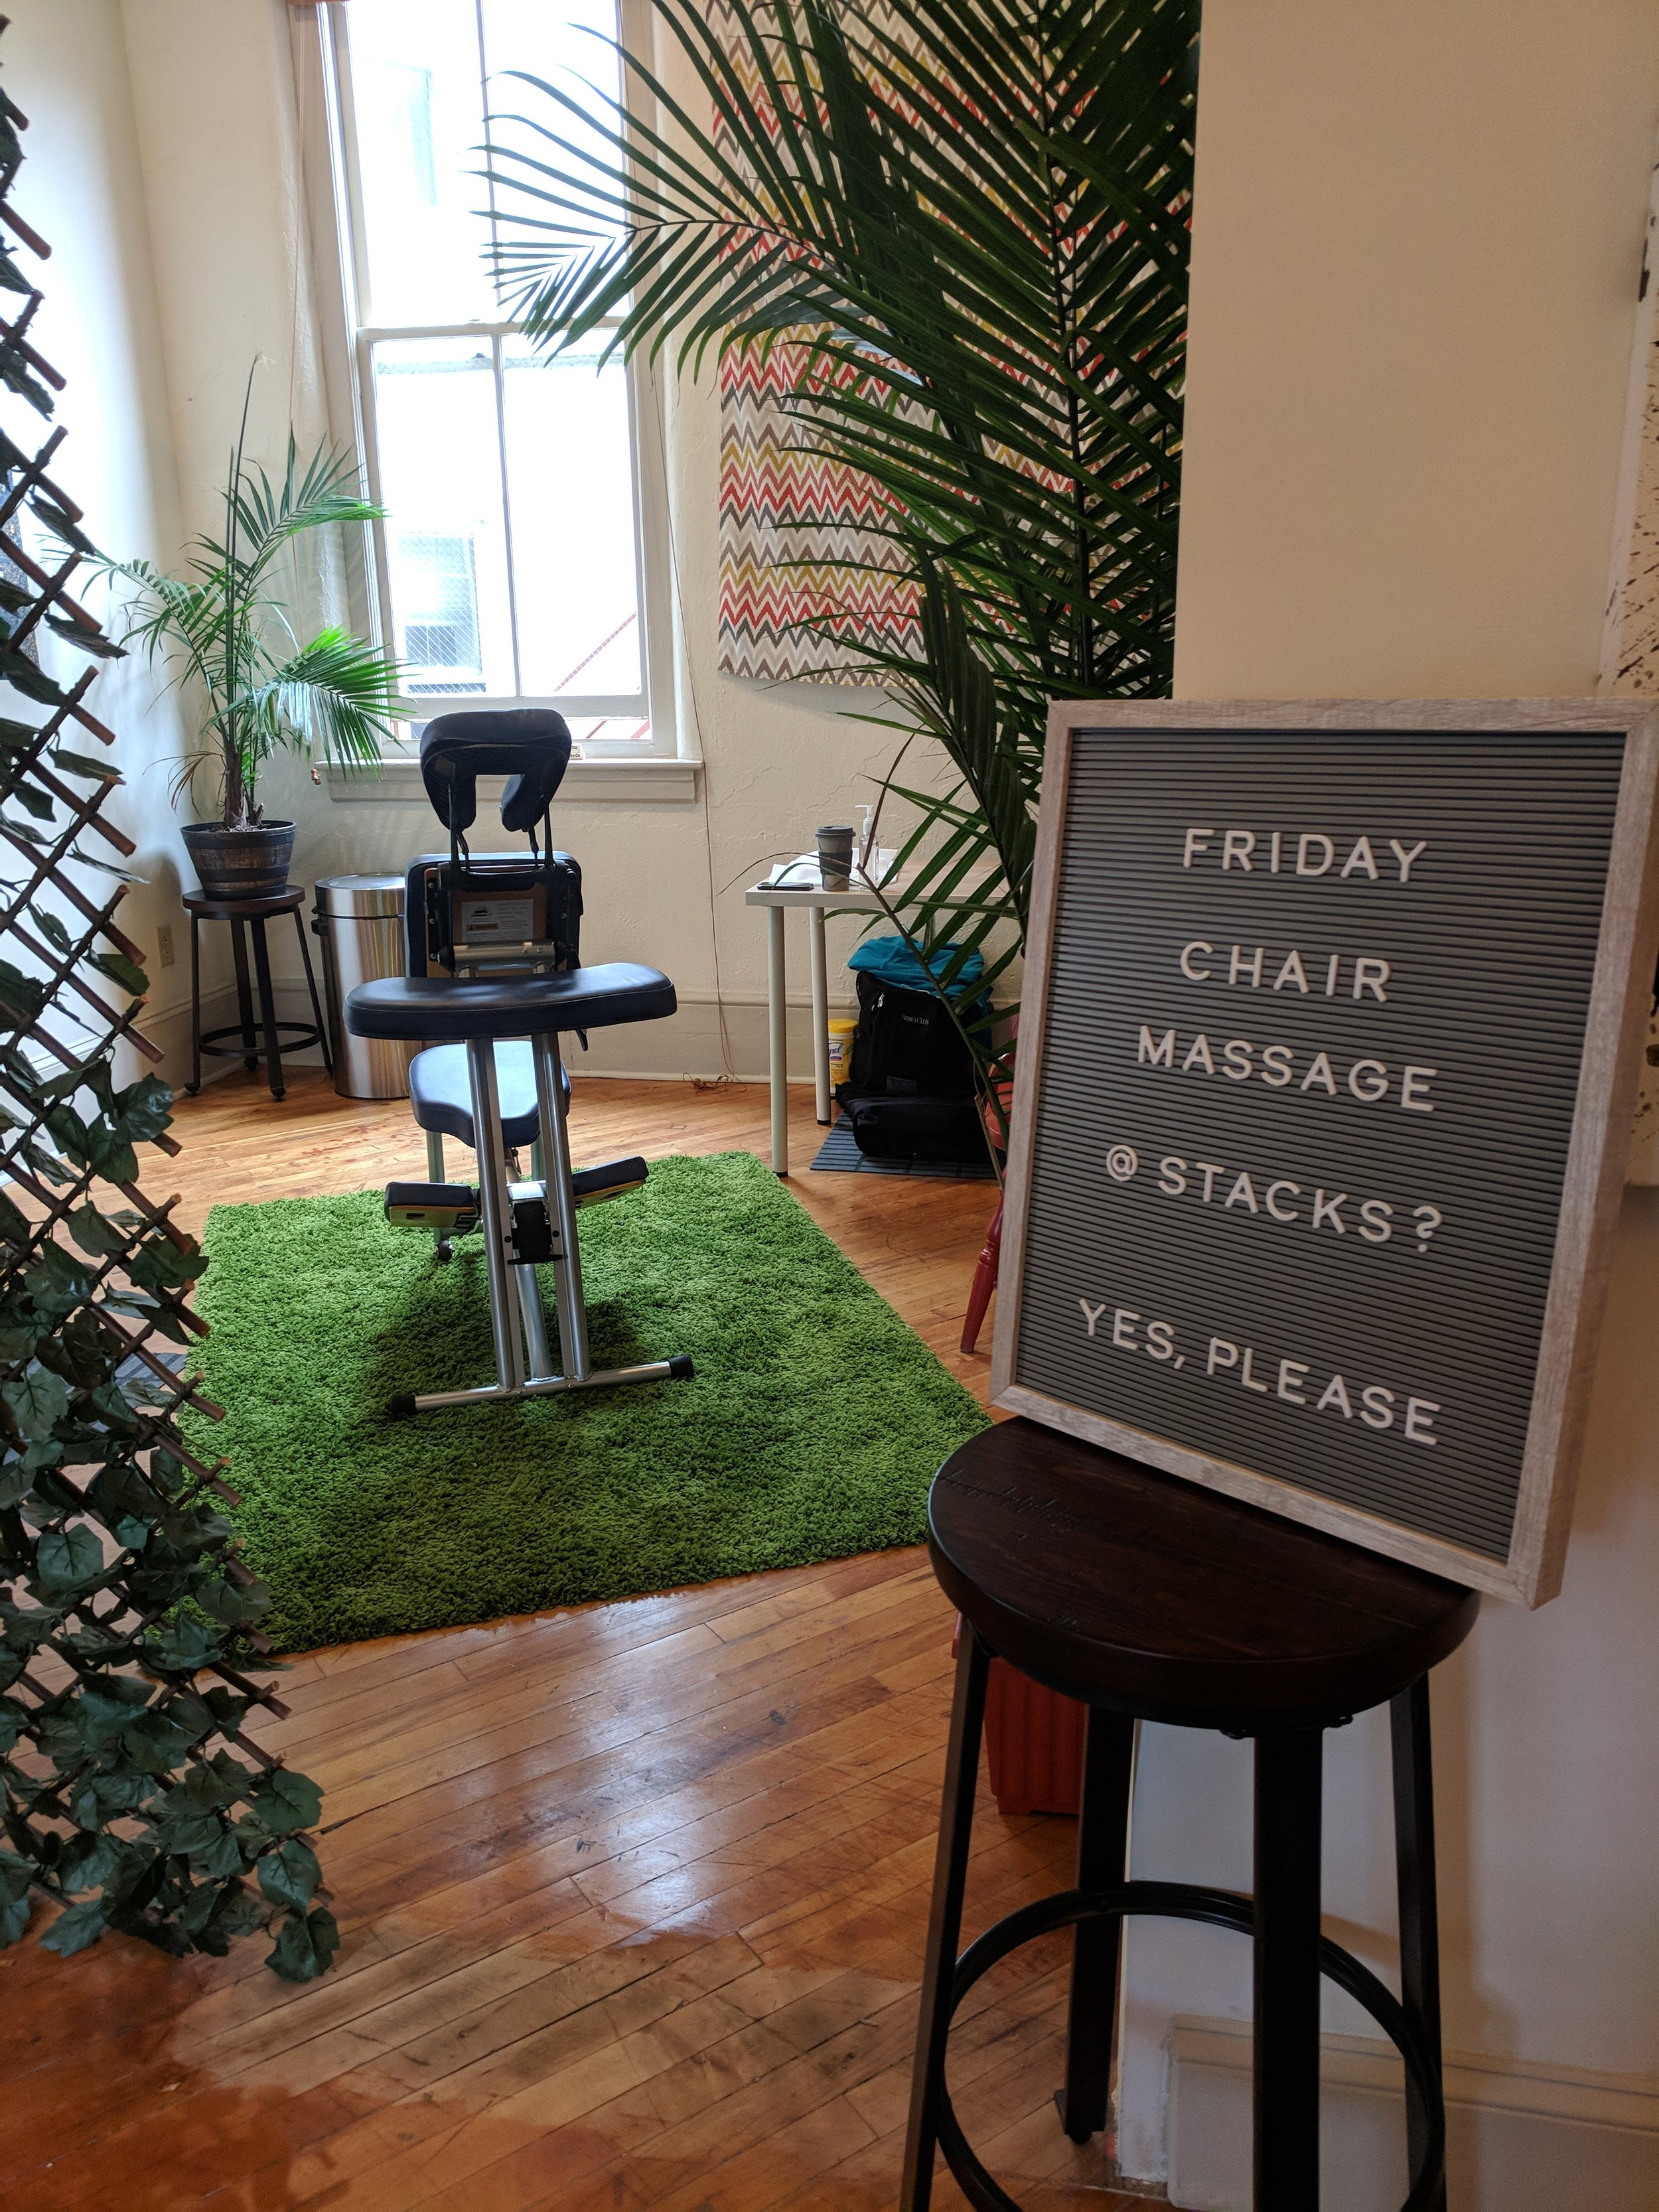 Massage chair in room with sign Friday Chair Massage at Stacks co-working